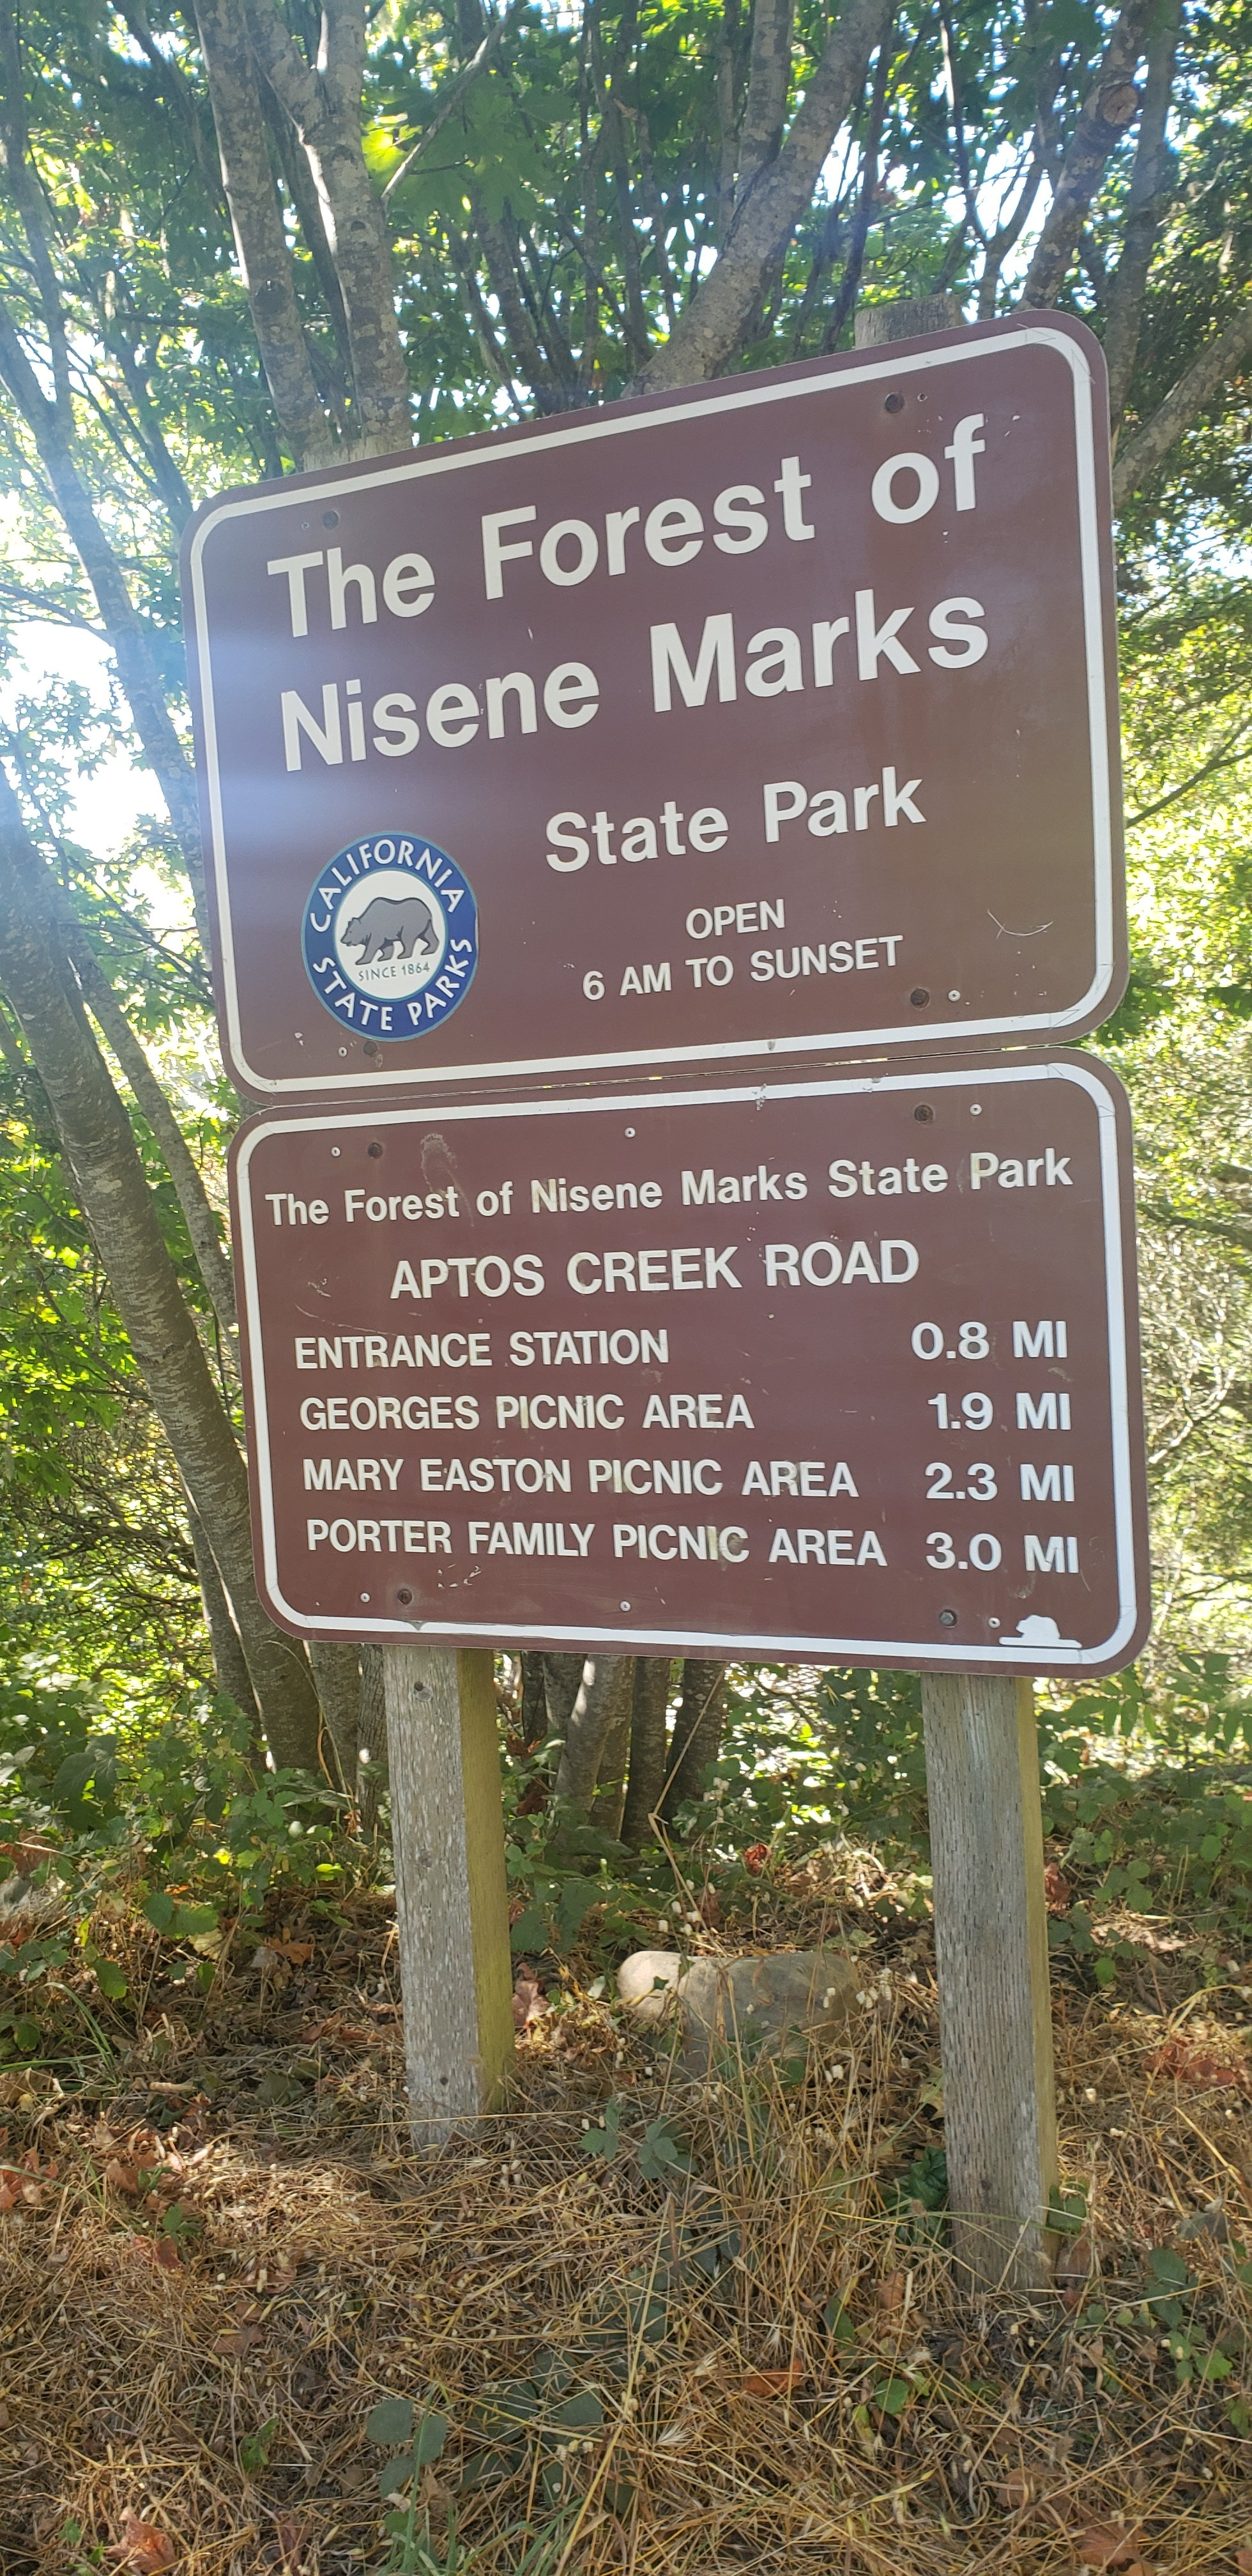 FOREST OF NISENE MARKS STATE PARK, Aptos, CA